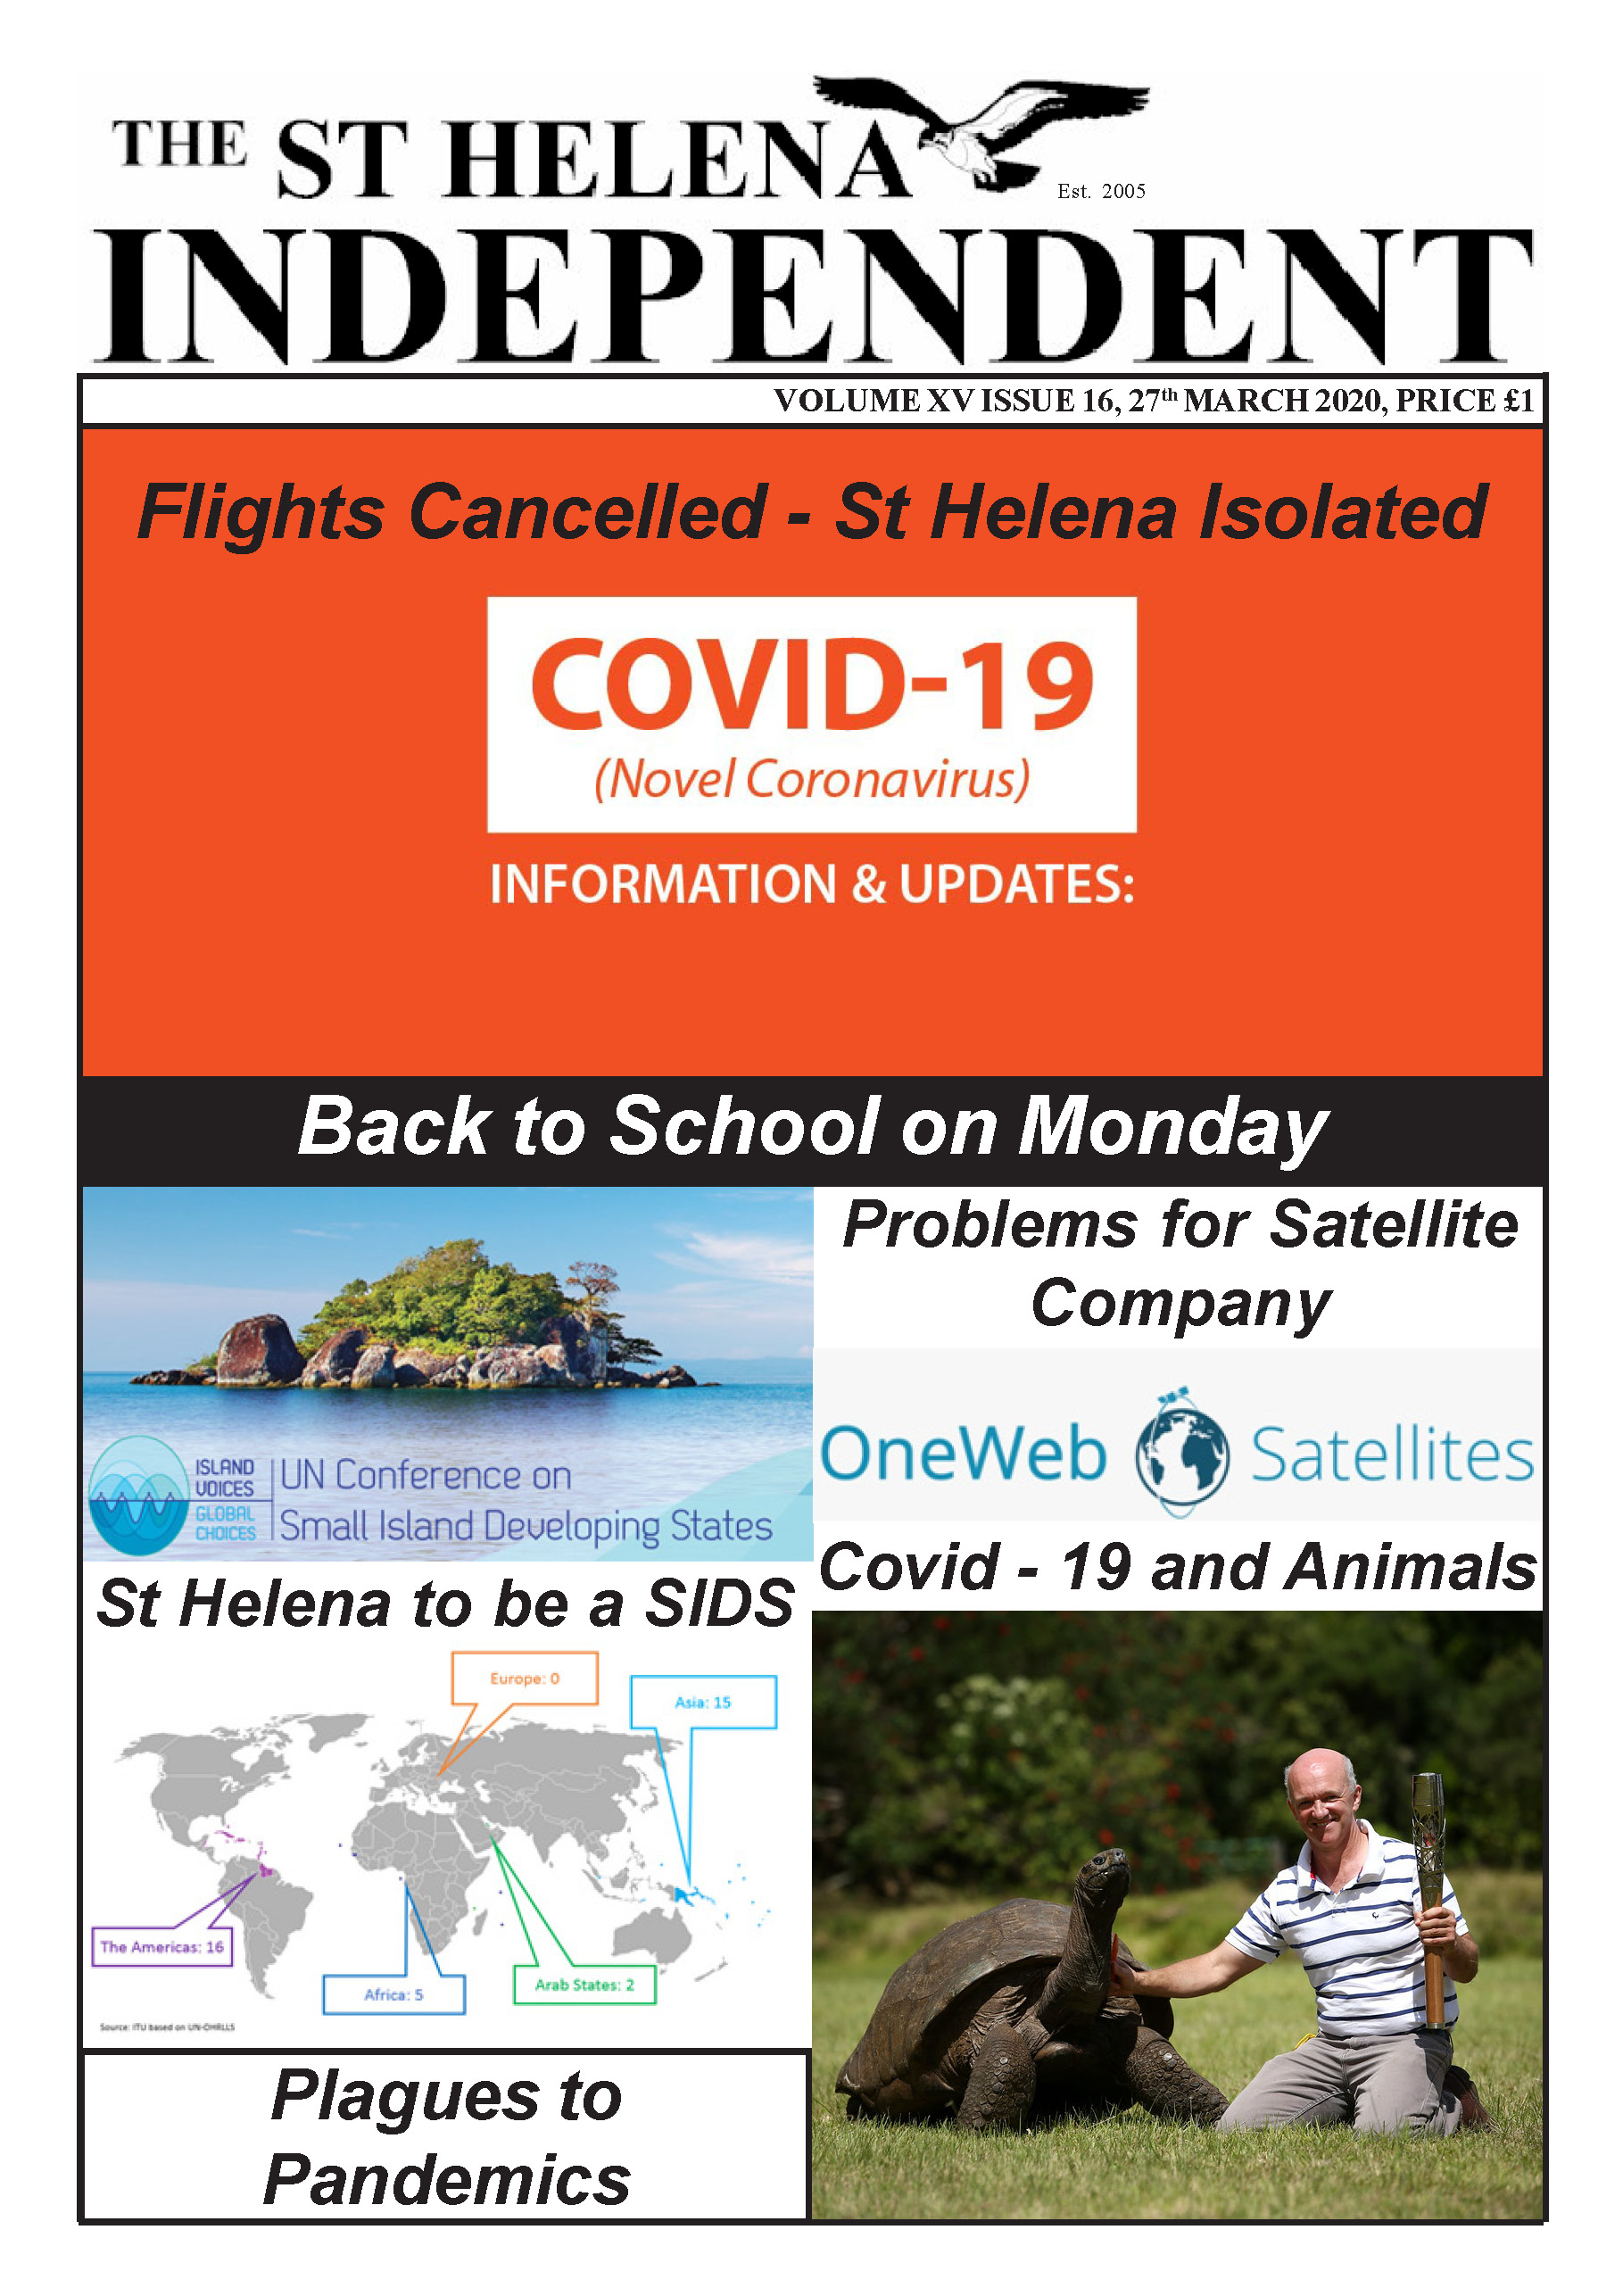 St Helena Independent 20200327 p1